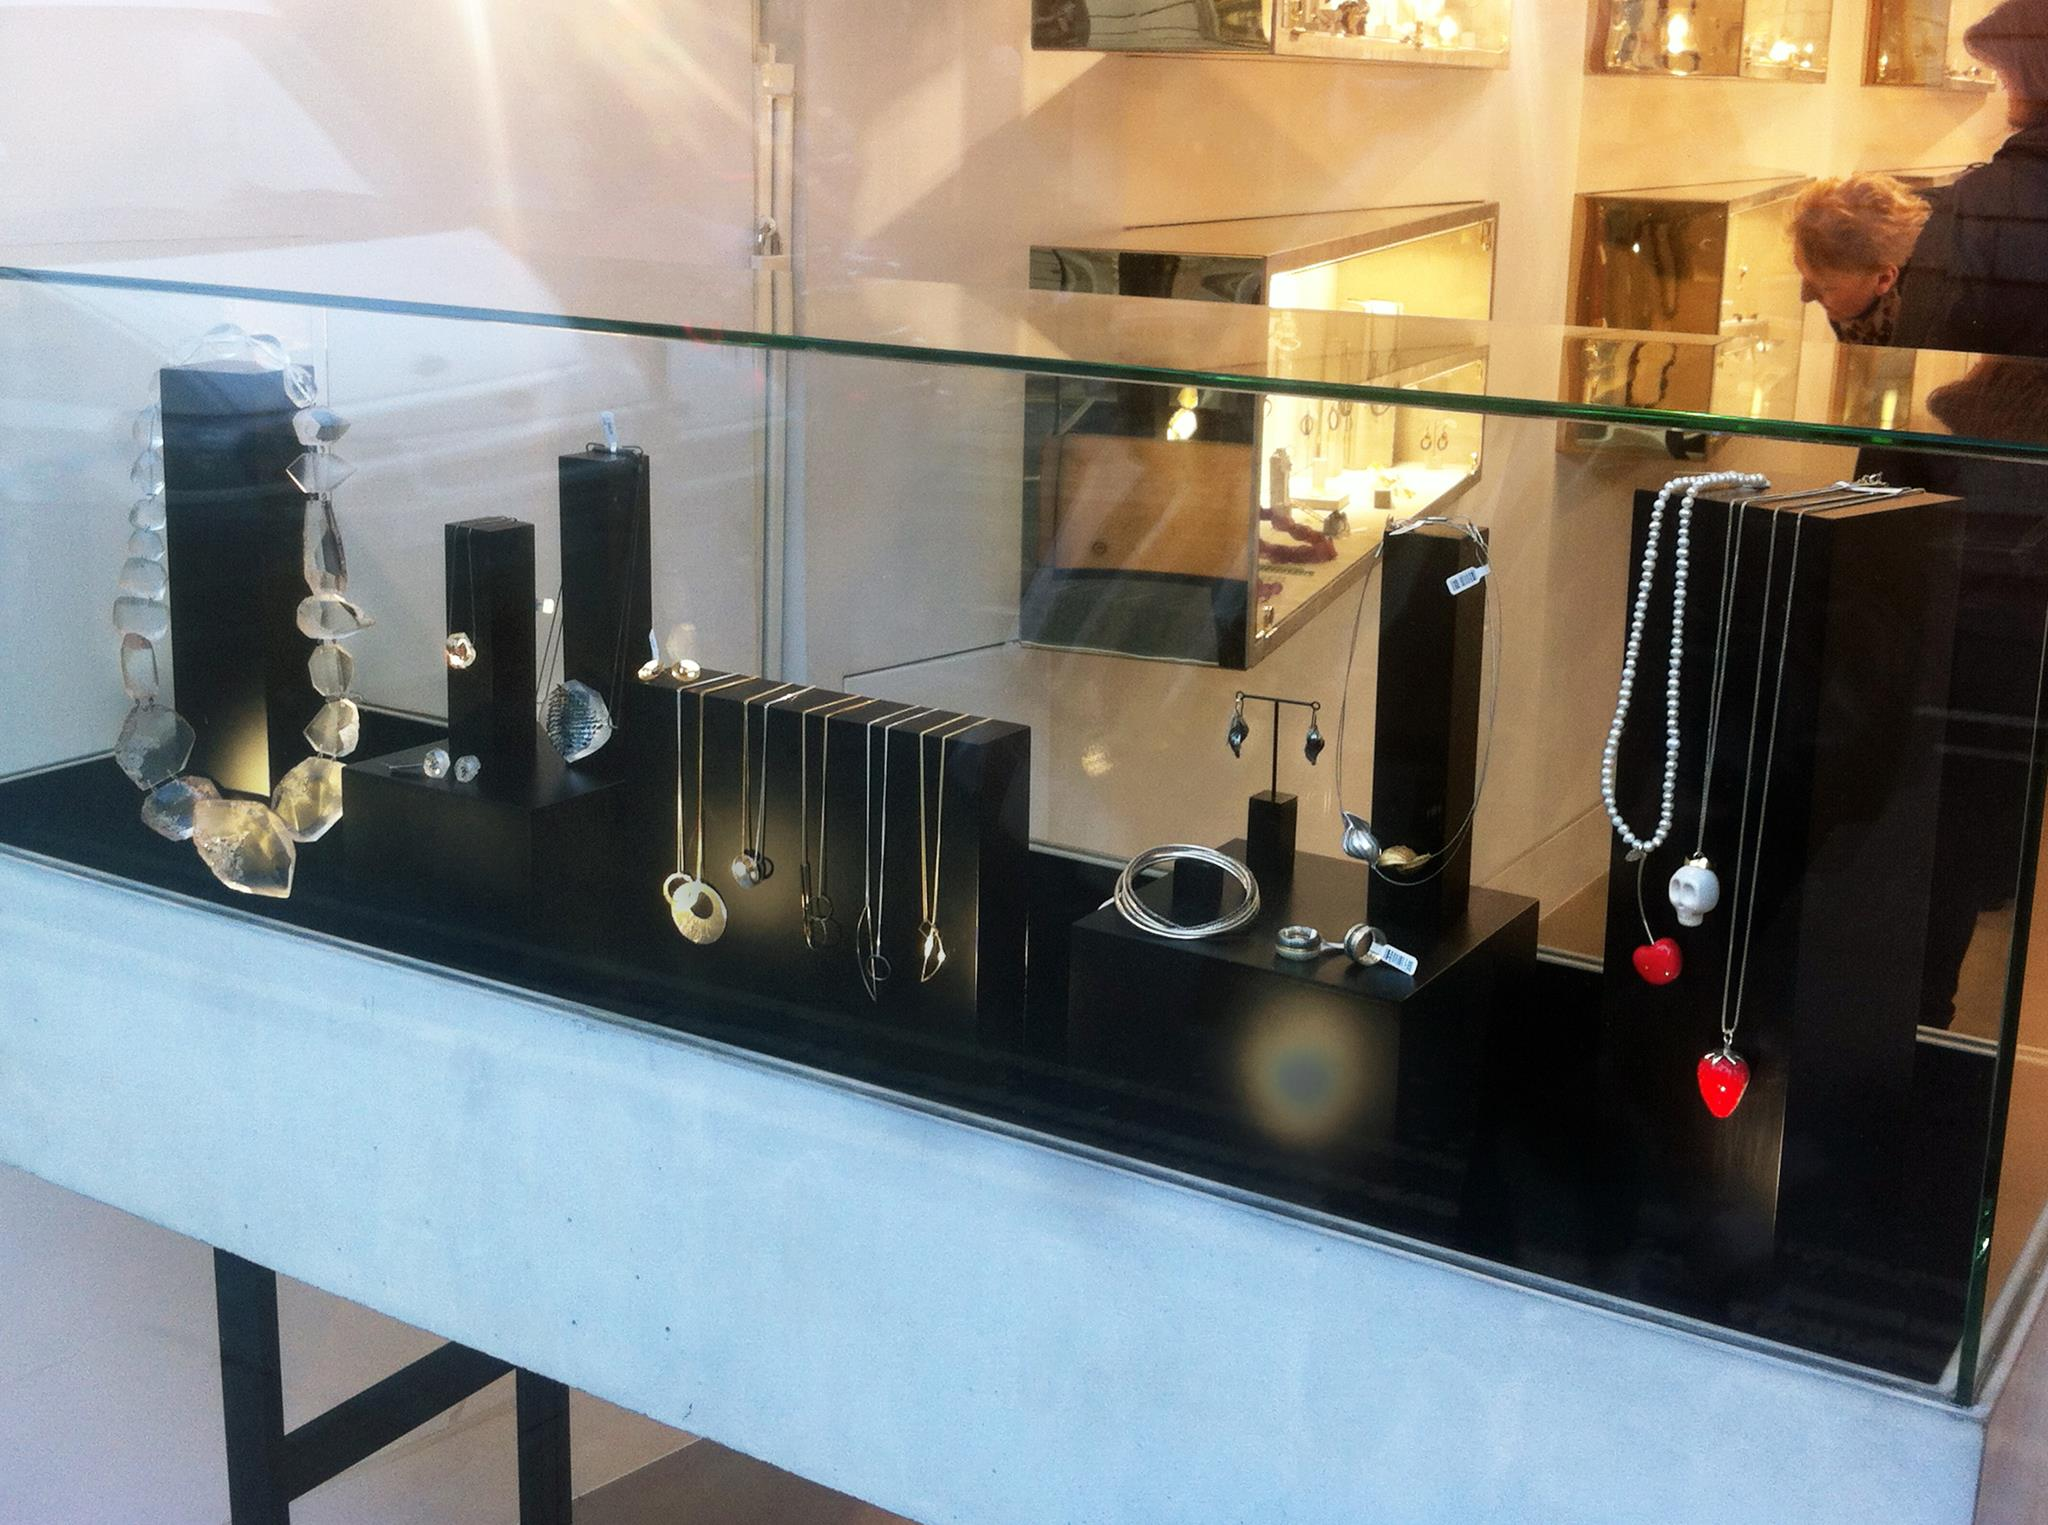 Glass display box with all black display setting, inspiration for jewelry display ideas from Sarah May Jewellery boutique.